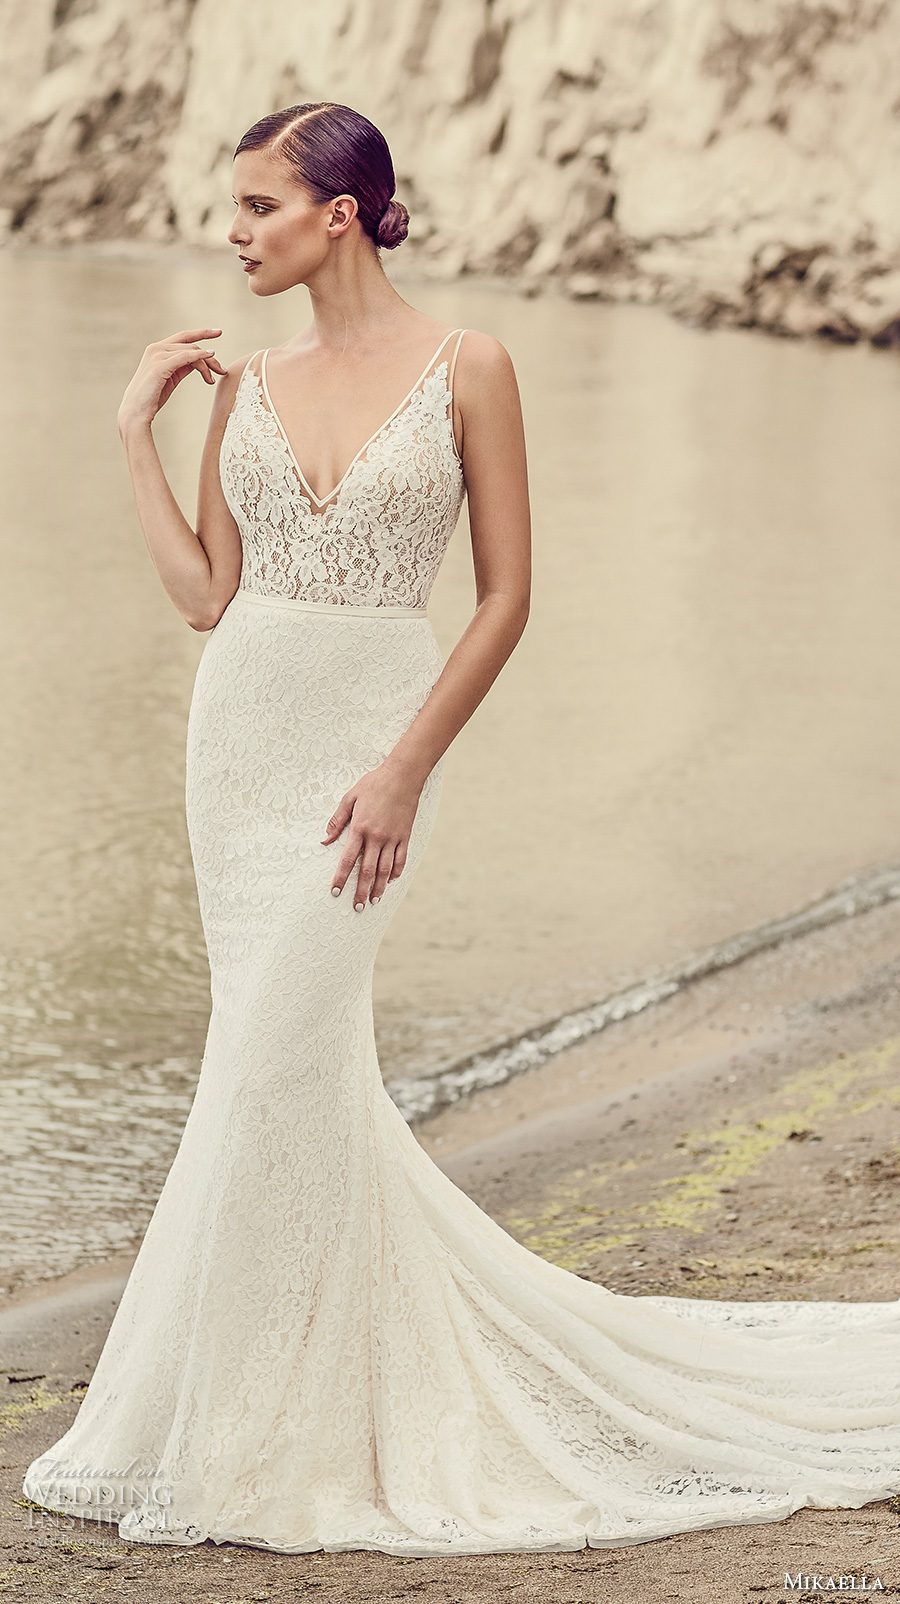 mikaella spring 2017 bridal sleeveless v neck full embroidered elegant fit and flare wedding dress open low back chapel train (2100) mv